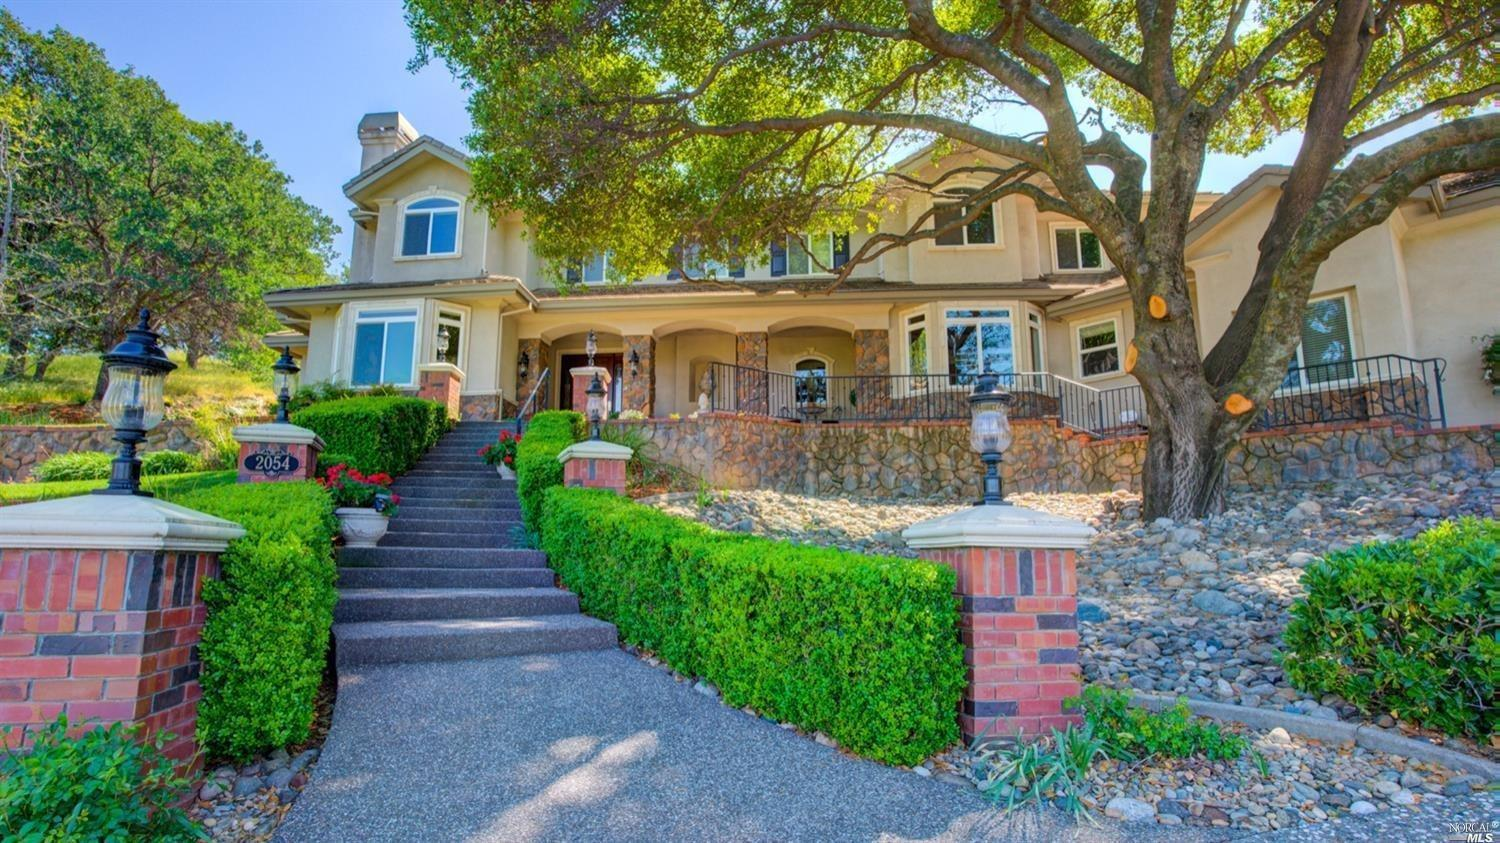 Photo of 2054 Pinecrest Court, Vacaville, CA 95688